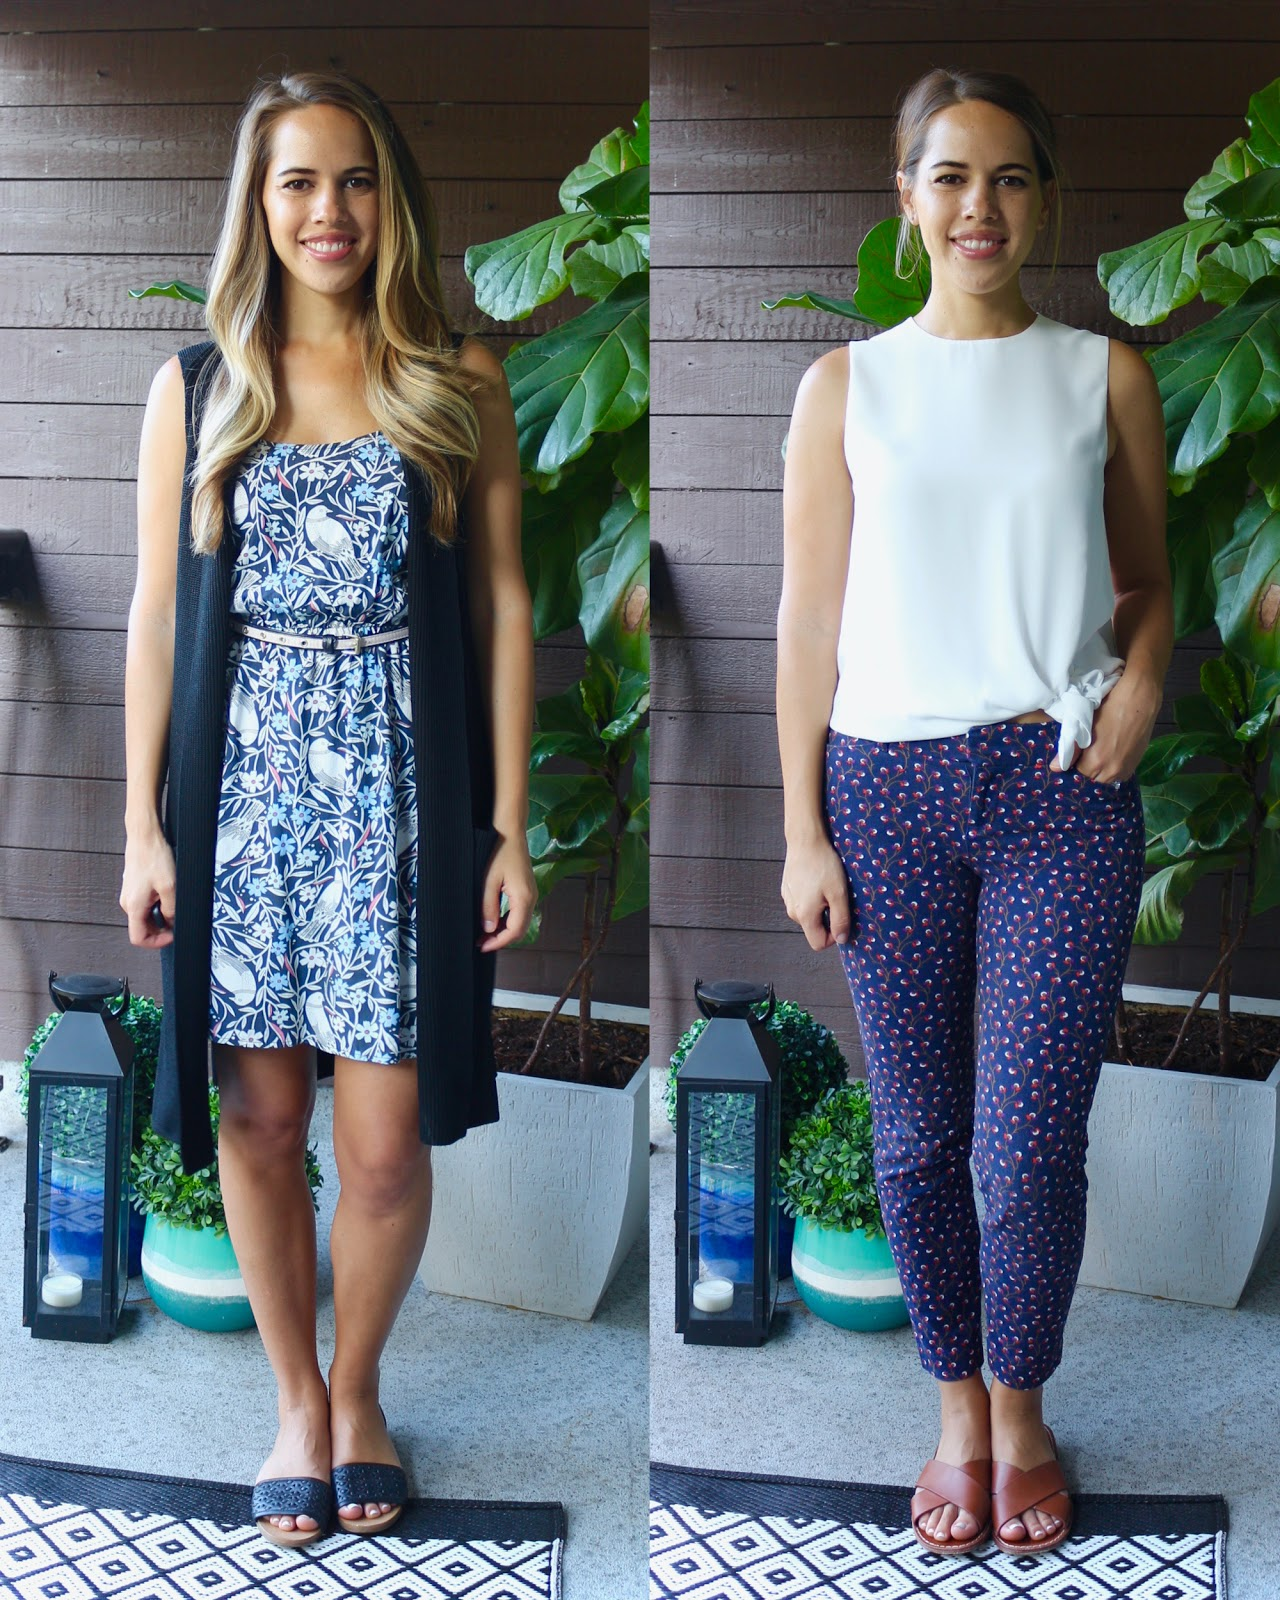 Jules in Flats July Outfits (Business Casual Summer Workwear on a Budget)